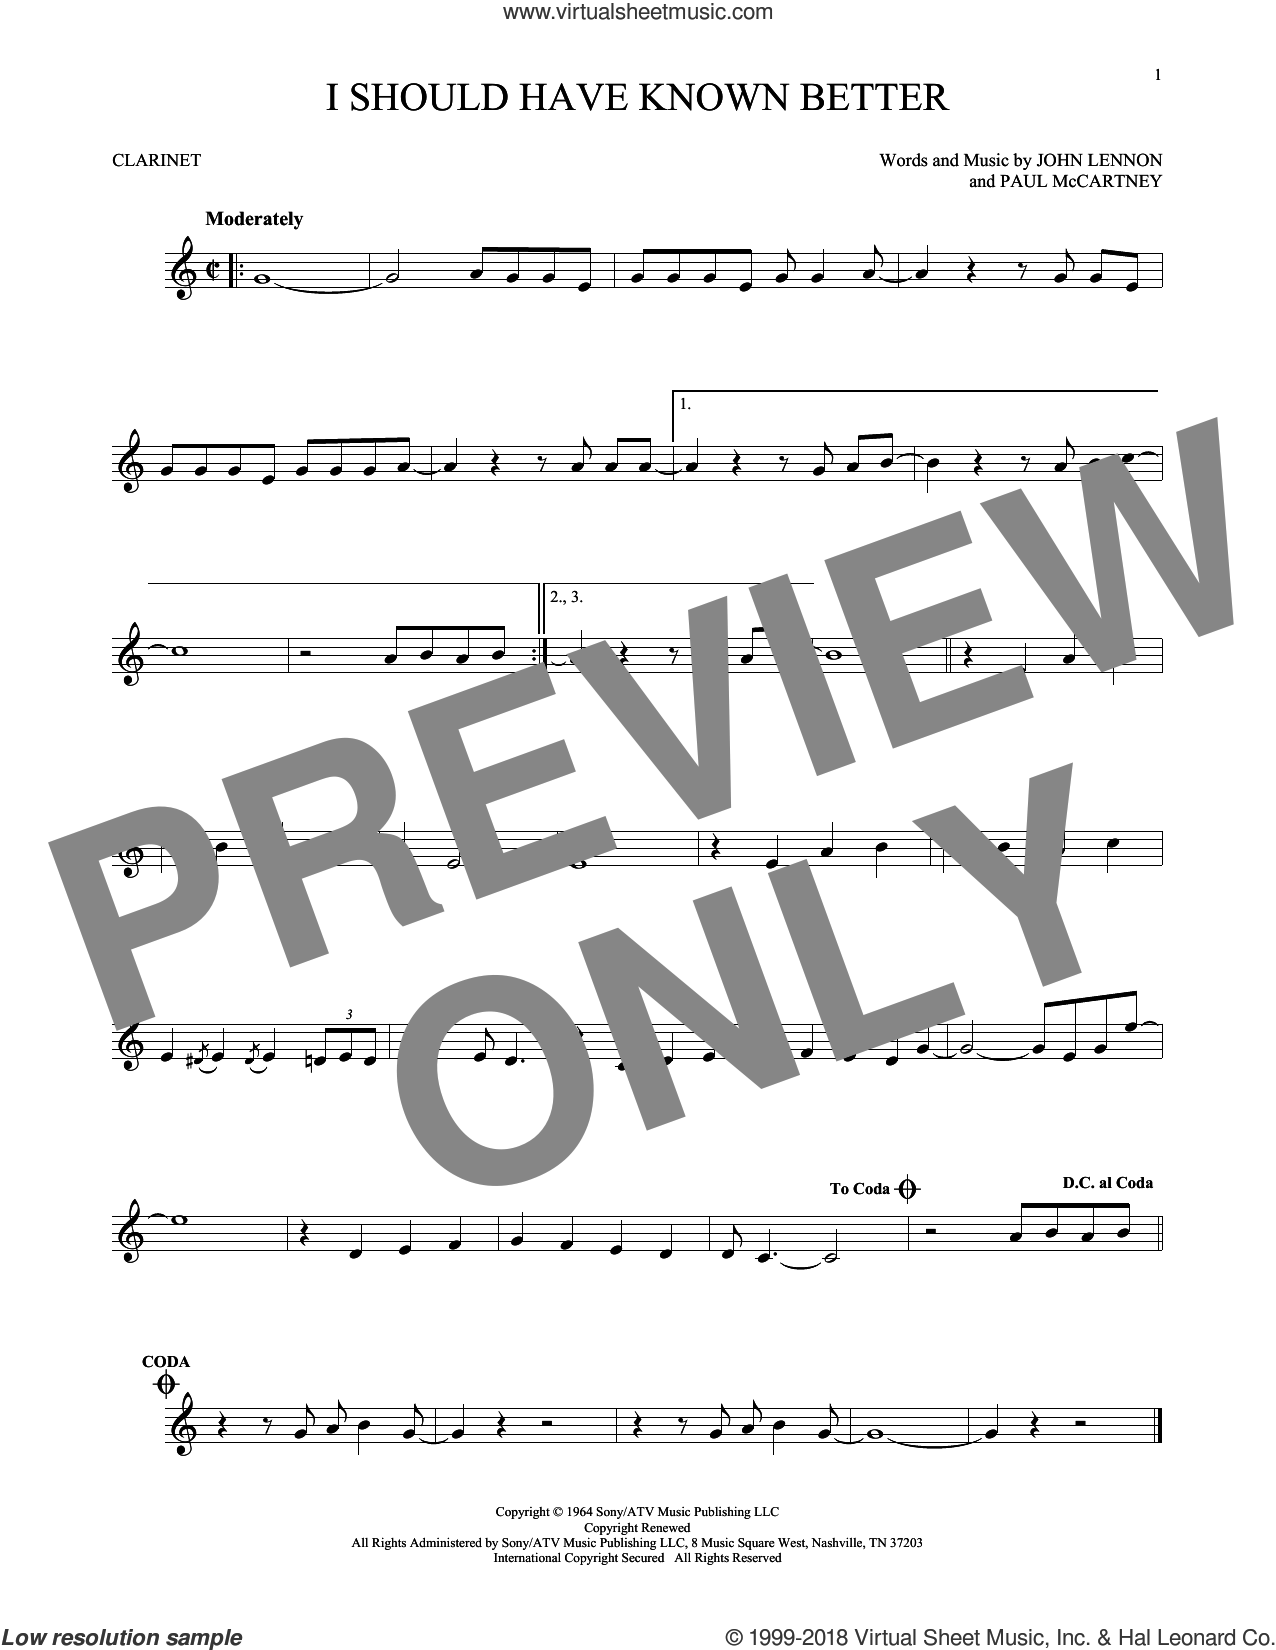 I Should Have Known Better sheet music for clarinet solo by The Beatles, John Lennon and Paul McCartney. Score Image Preview.